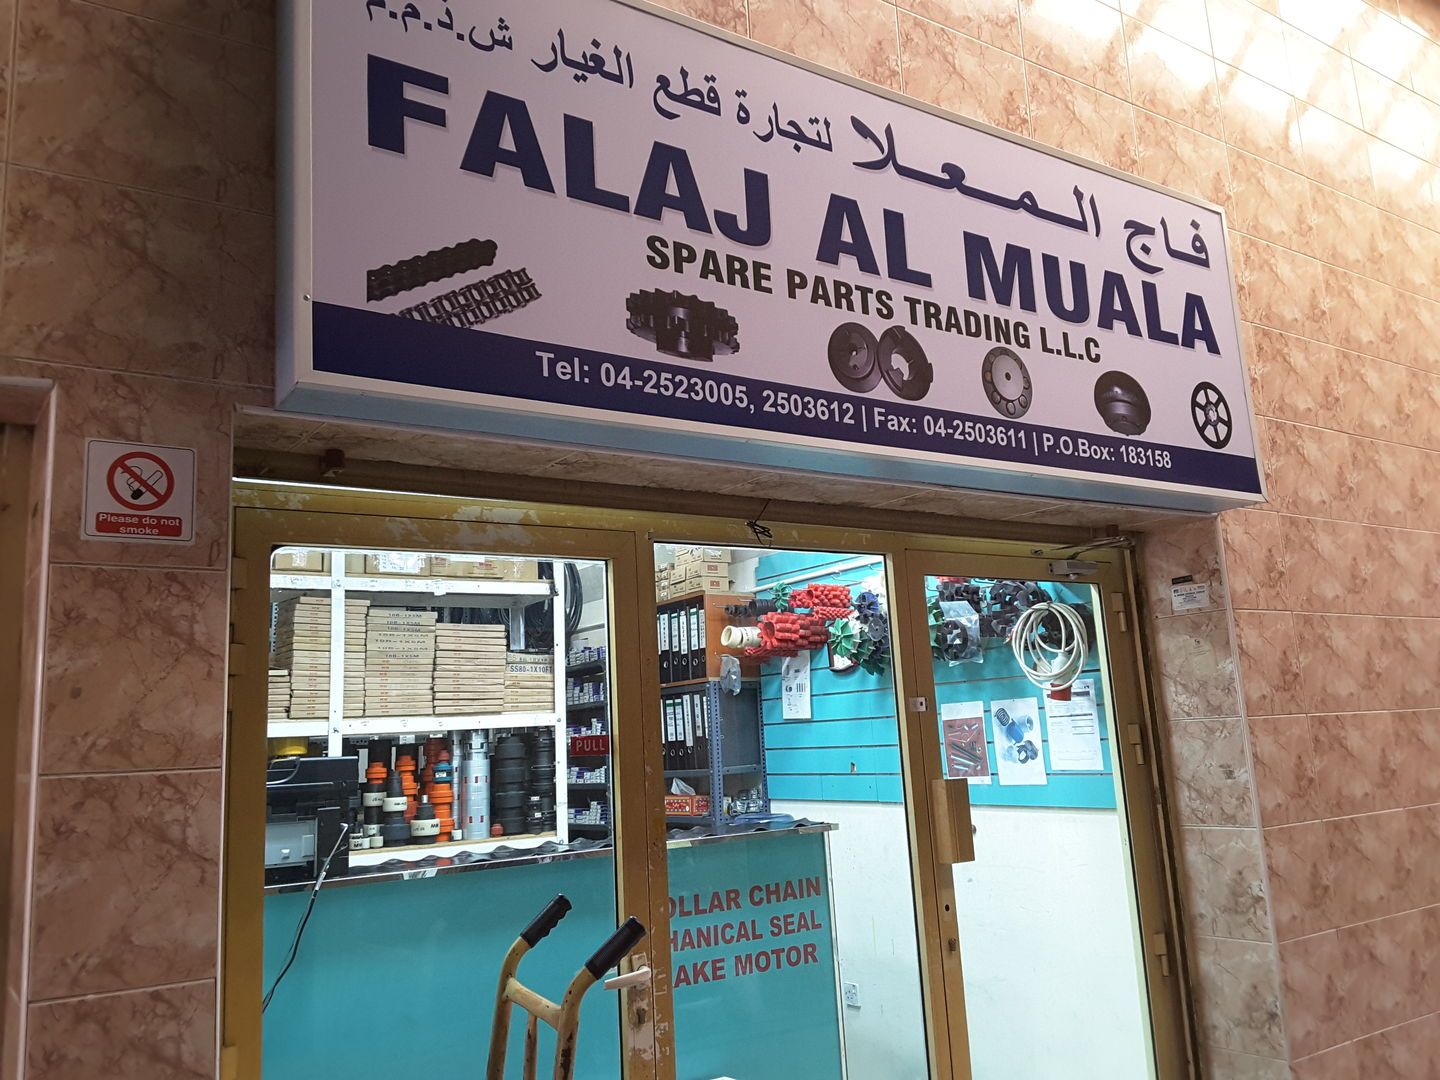 HiDubai-business-falaj-al-muala-spare-parts-trading-b2b-services-distributors-wholesalers-naif-dubai-2